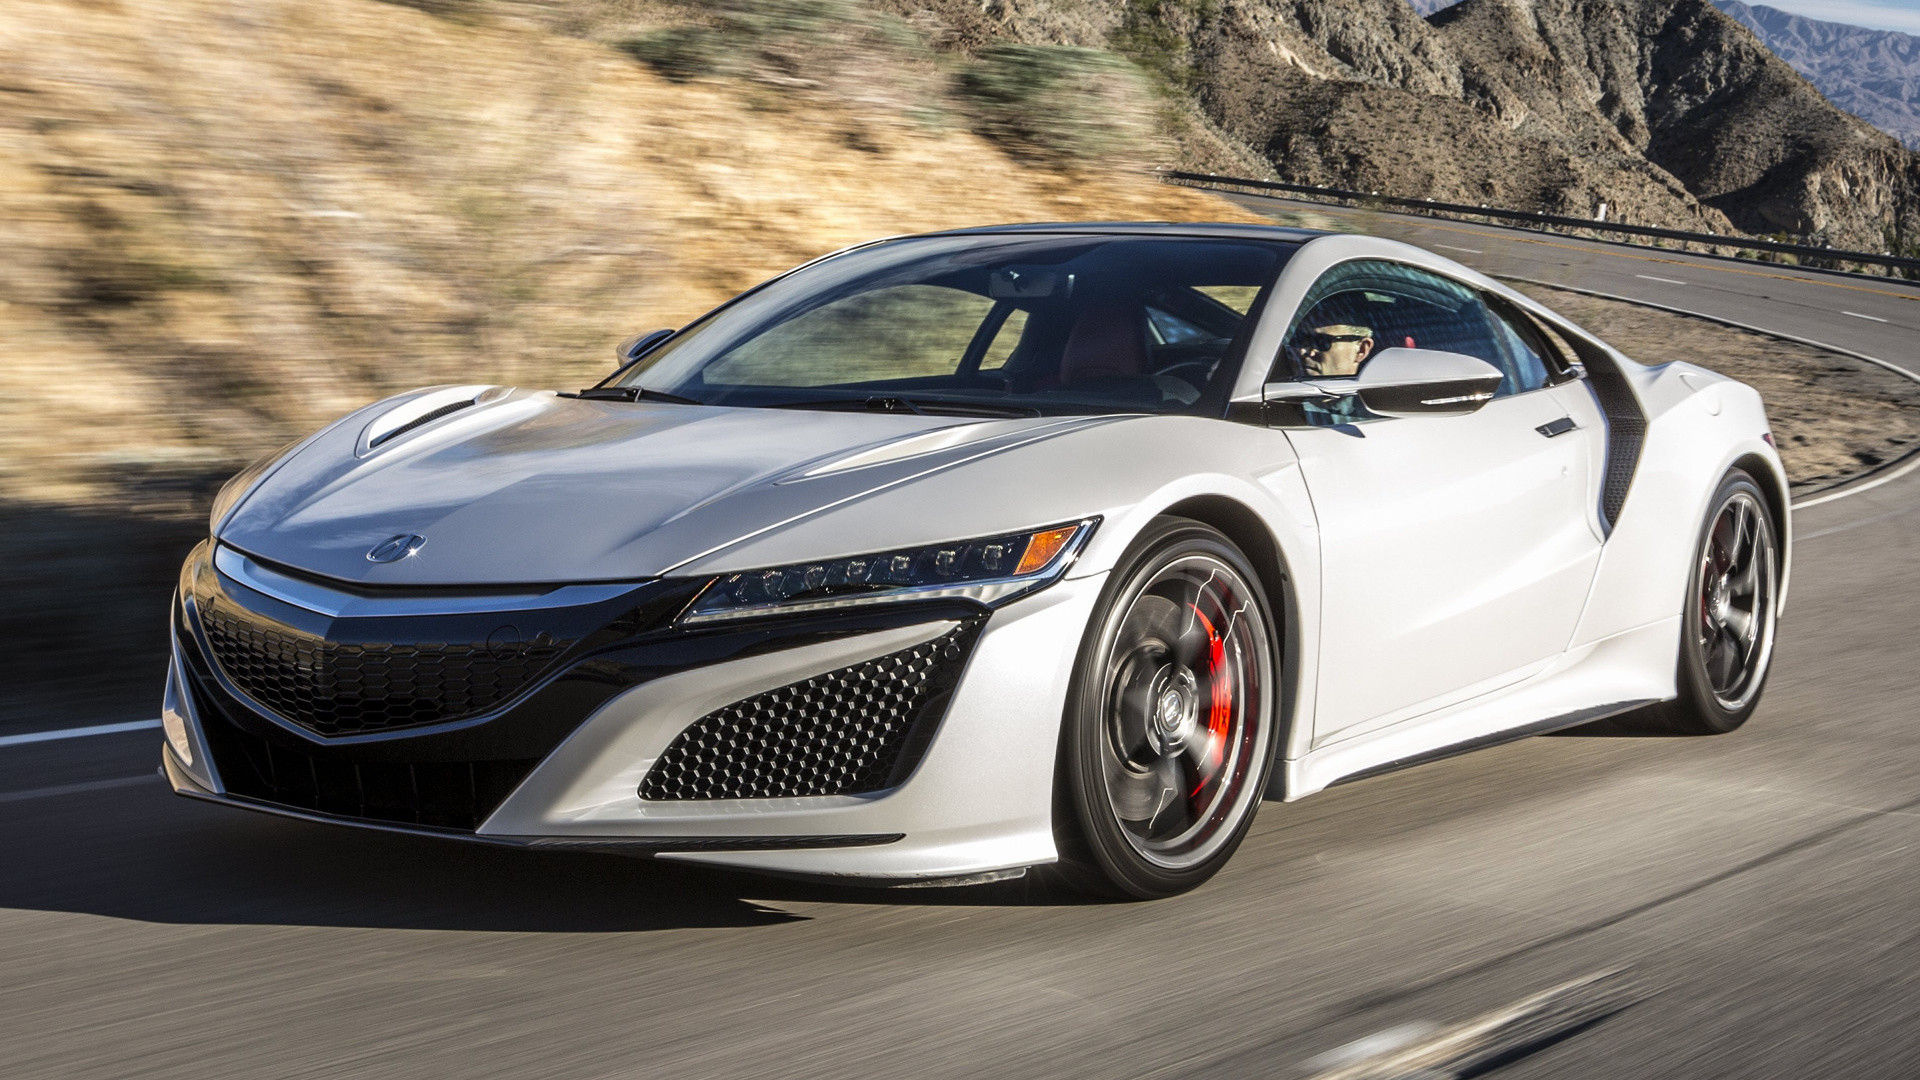 2018 Acura Nsx Wallpapers ·①